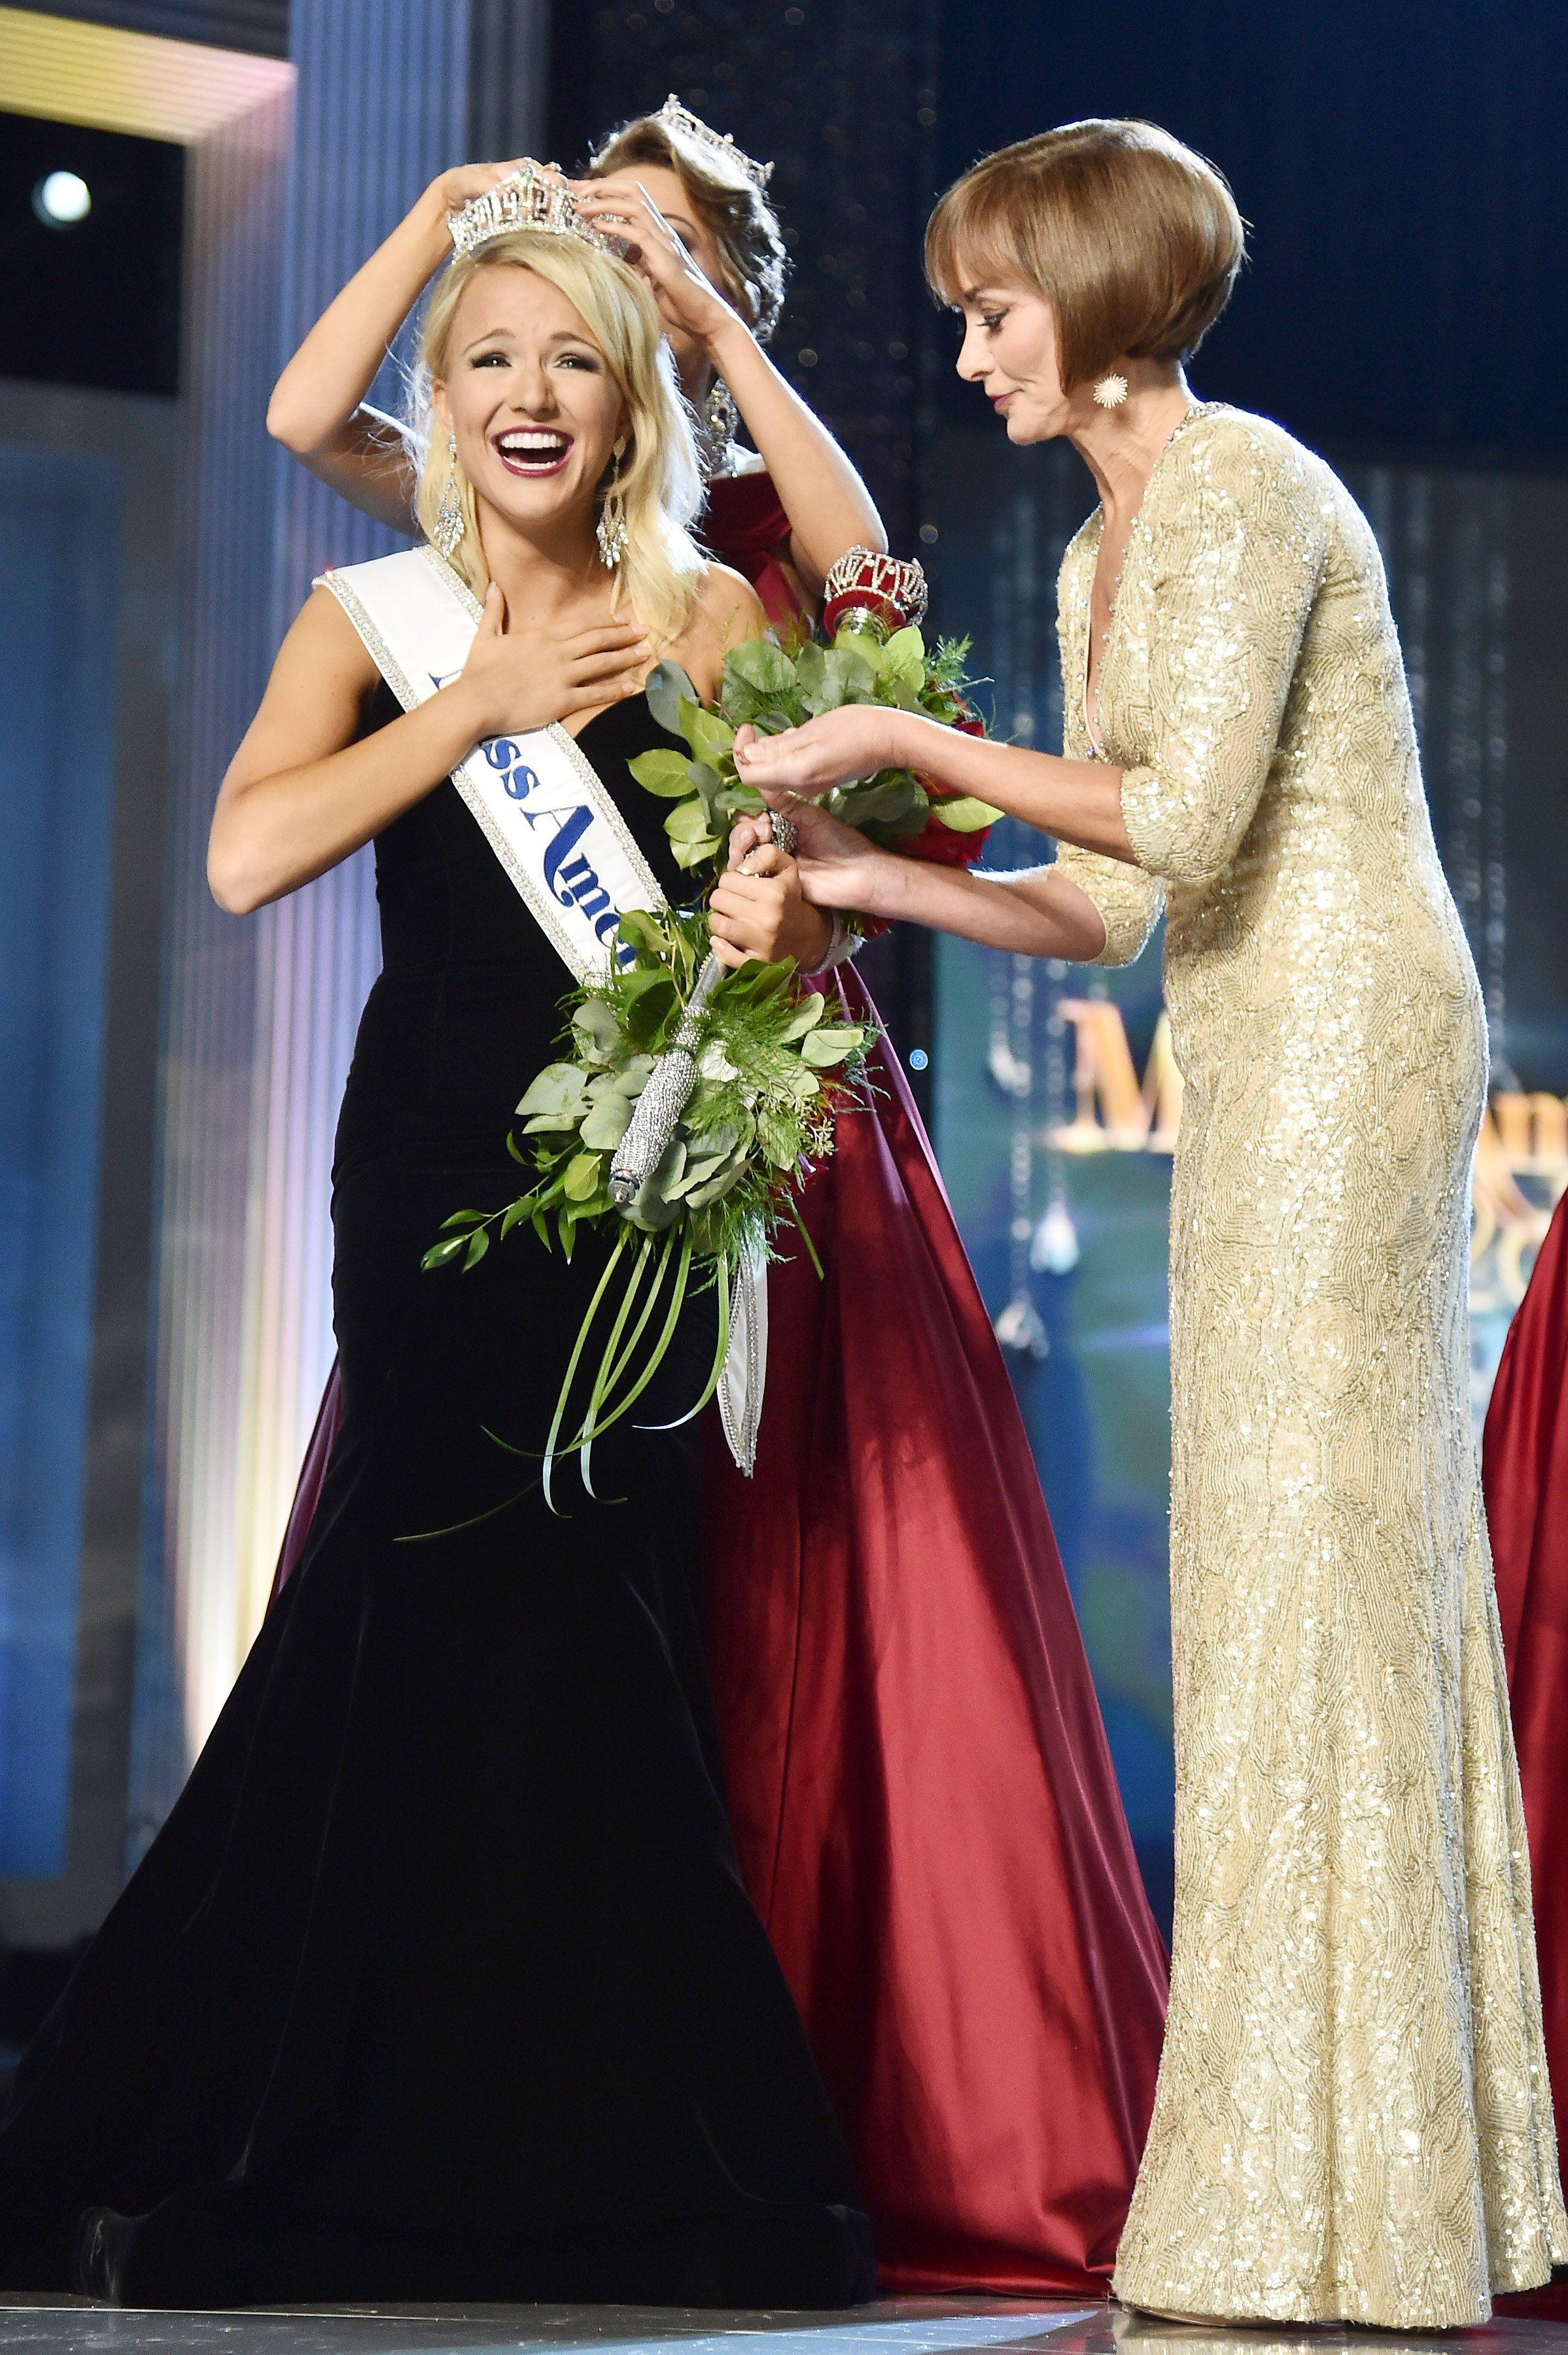 Miss America 2017 Savvy Shields and Chairman of the Board at Miss America Organization Lynn Weidner appear onstage during the 2017 Miss America Competition at Boardwalk Hall Arena on September 11, 2016 in Atlantic City